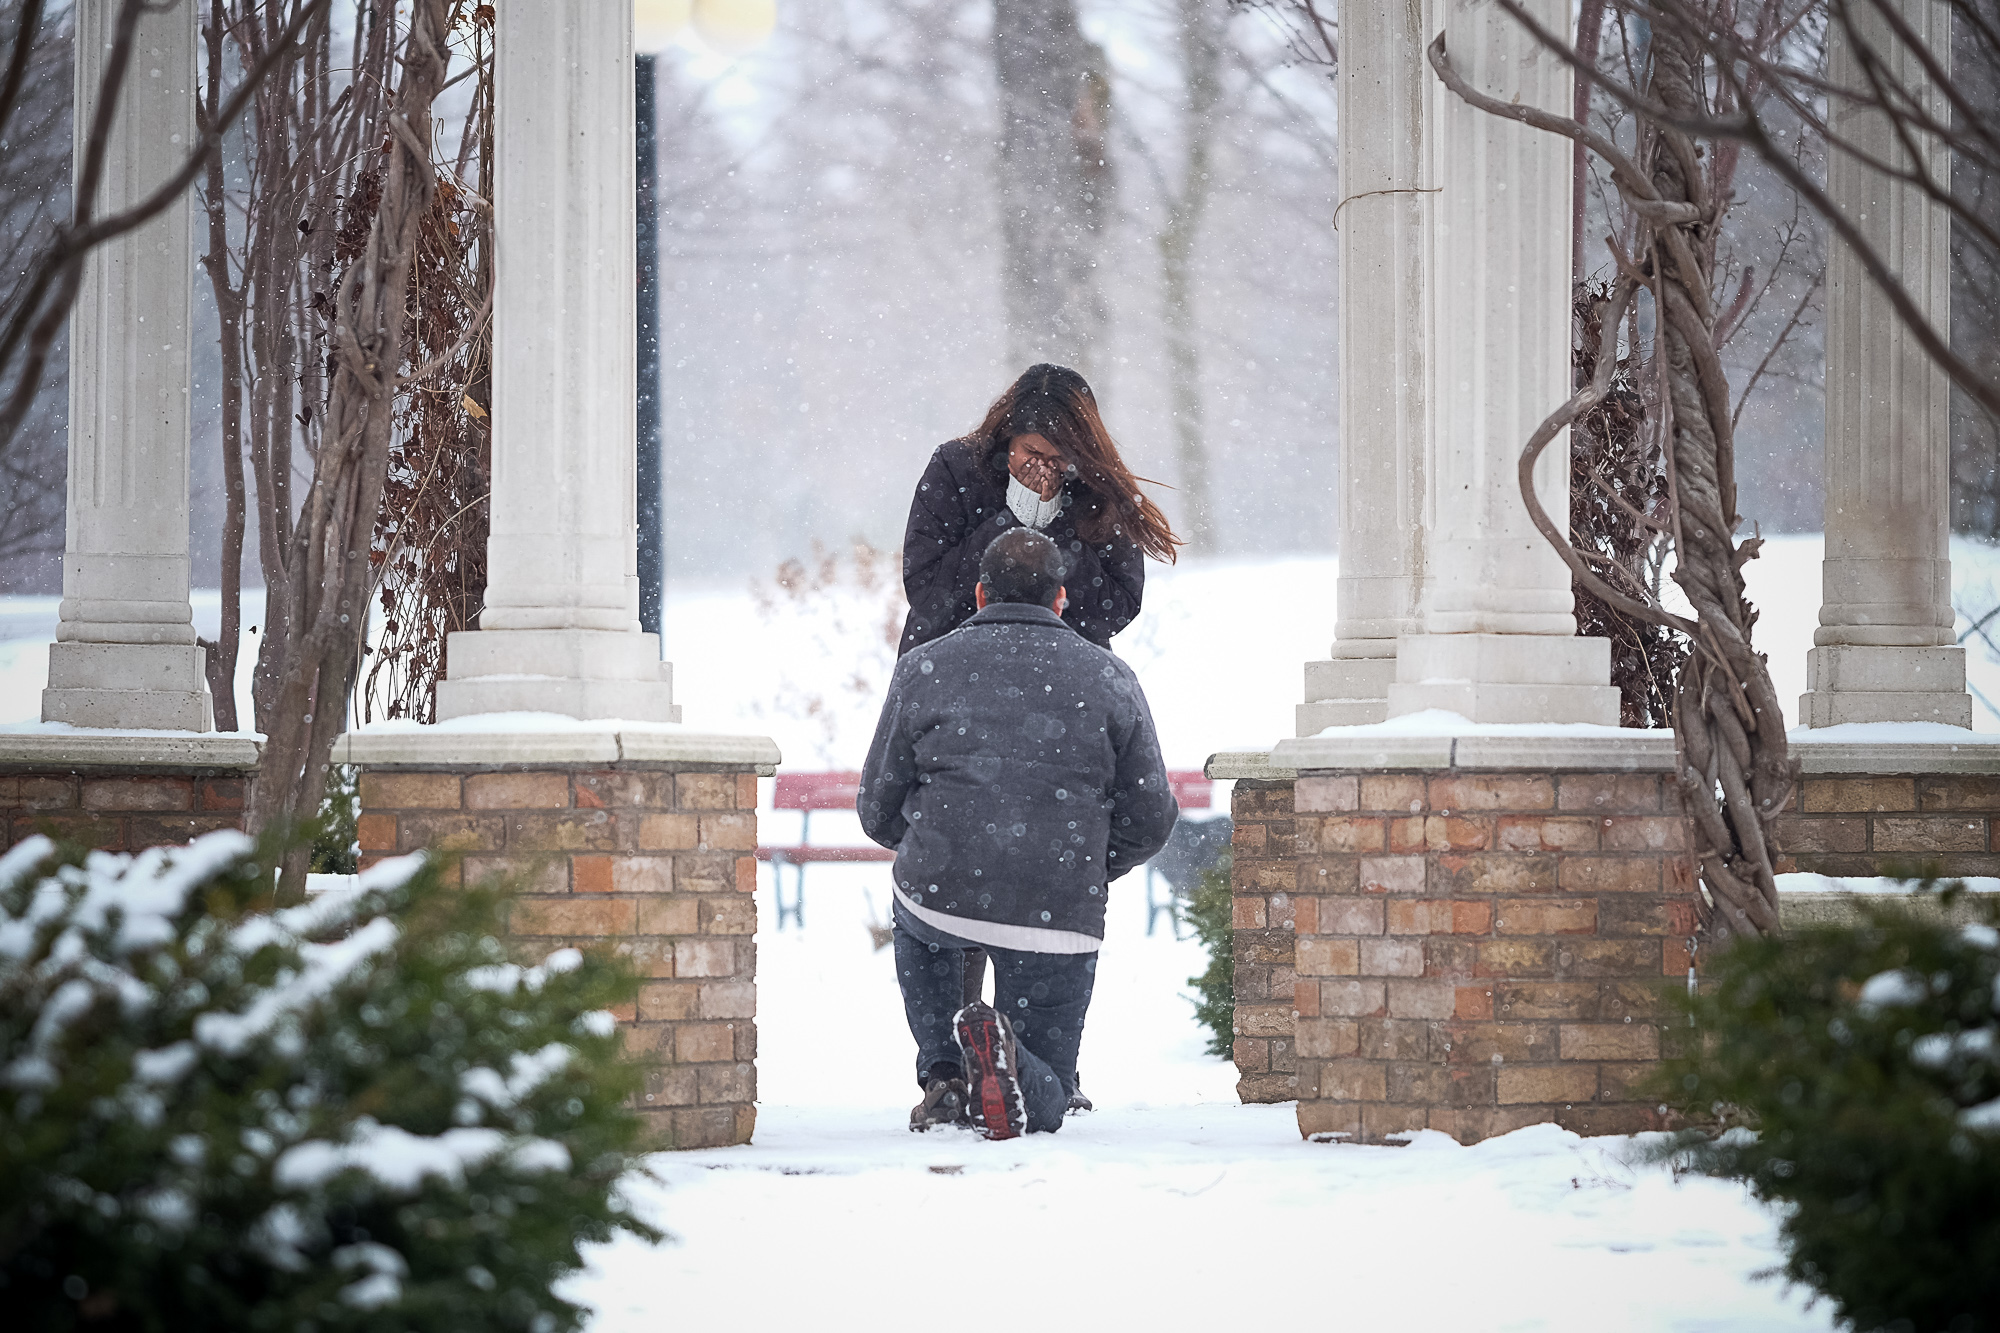 Jay proposes to his girlfriend in Waterloo Park during a winter snowstorm.